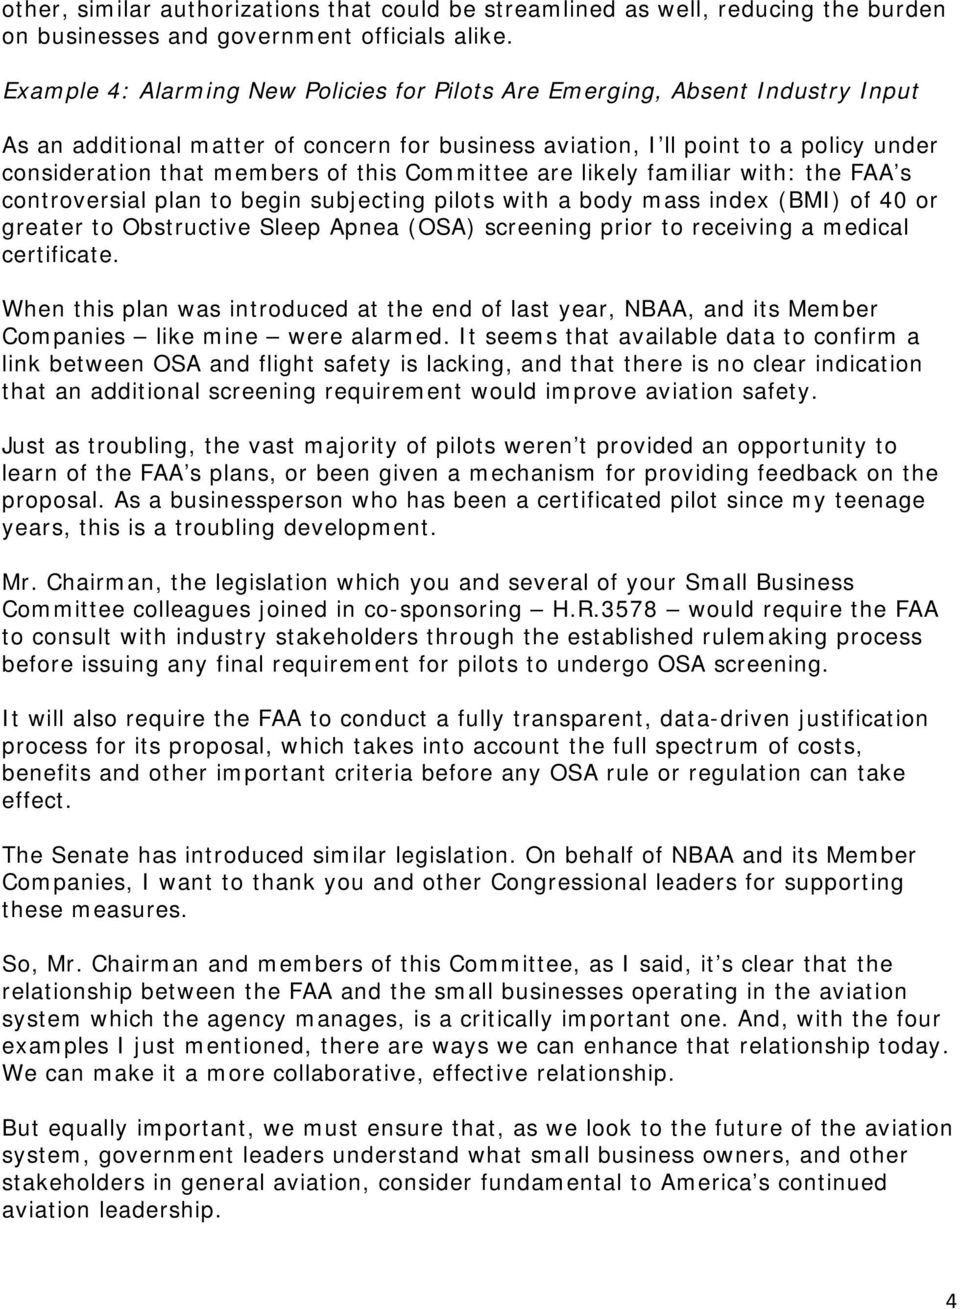 this Committee are likely familiar with: the FAA s controversial plan to begin subjecting pilots with a body mass index (BMI) of 40 or greater to Obstructive Sleep Apnea (OSA) screening prior to